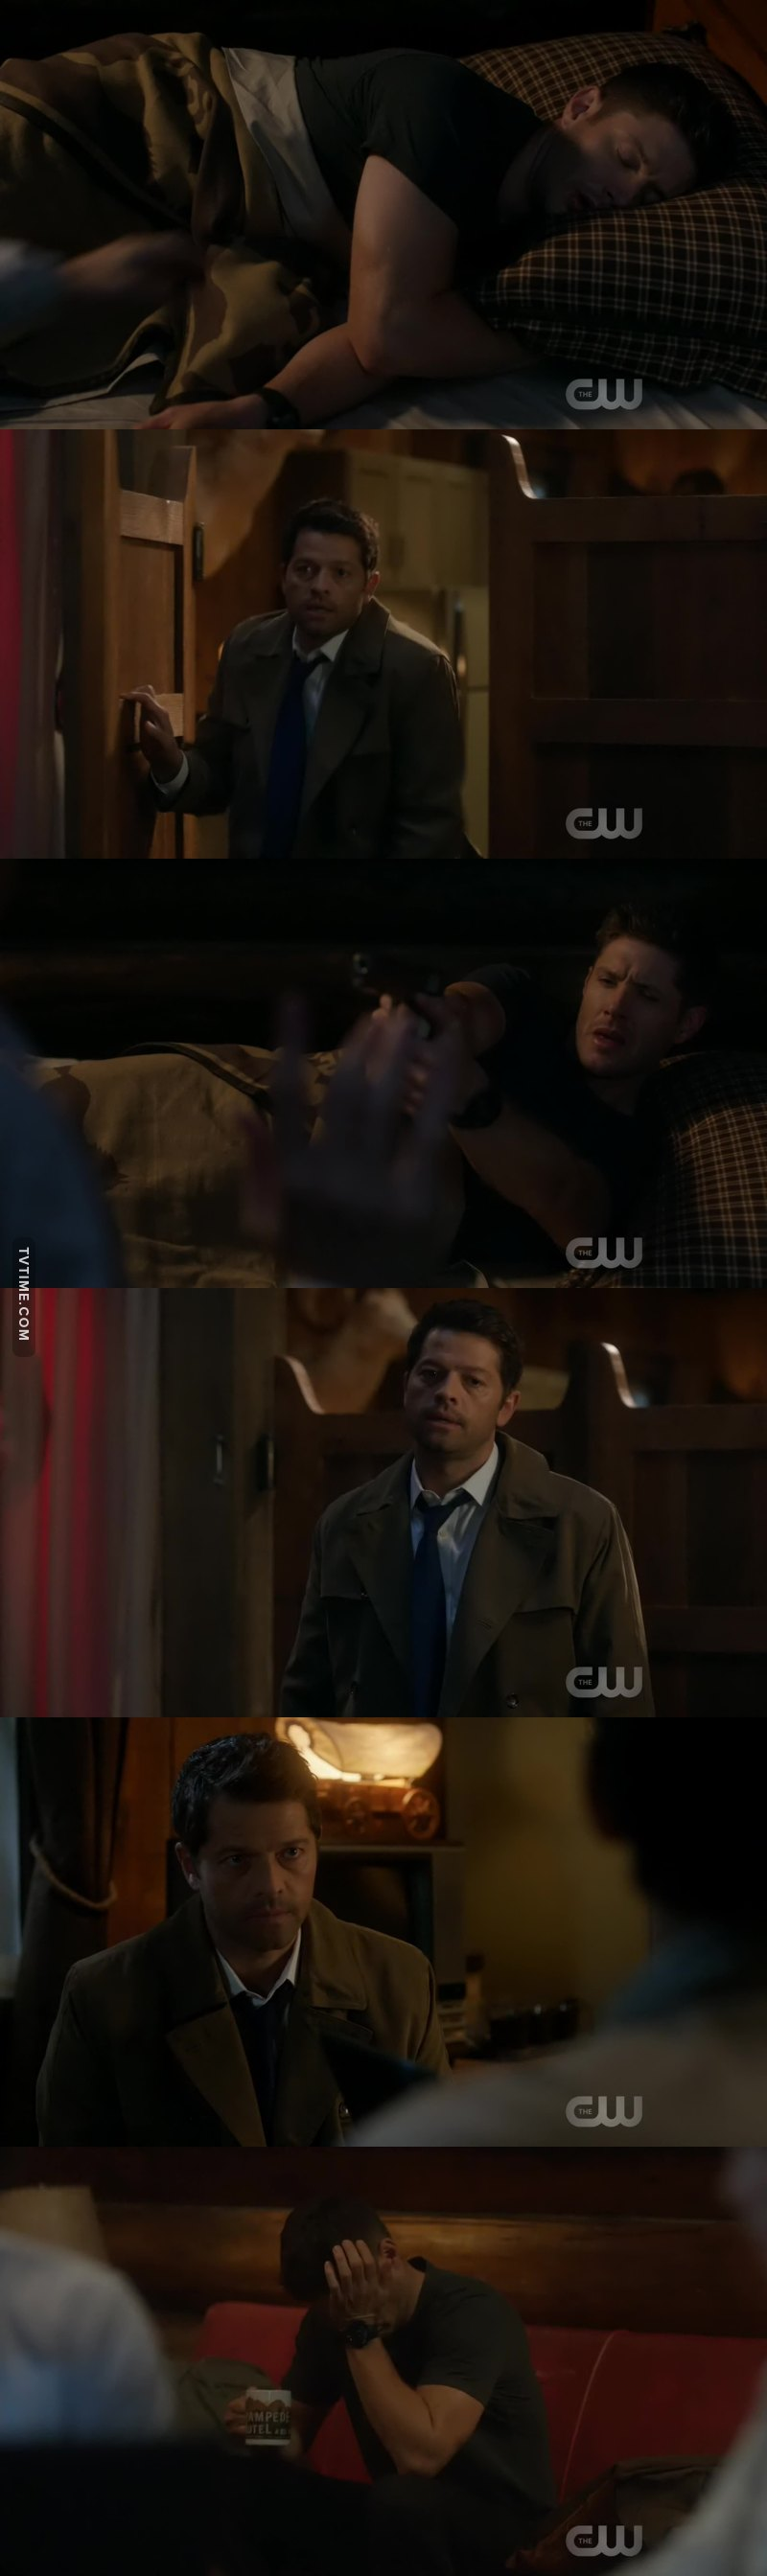 They could honnestly be married i wouldn't see the difference, they went so deep into each other's personal space, Cas picks up so many things about Dean it's so endearing :')